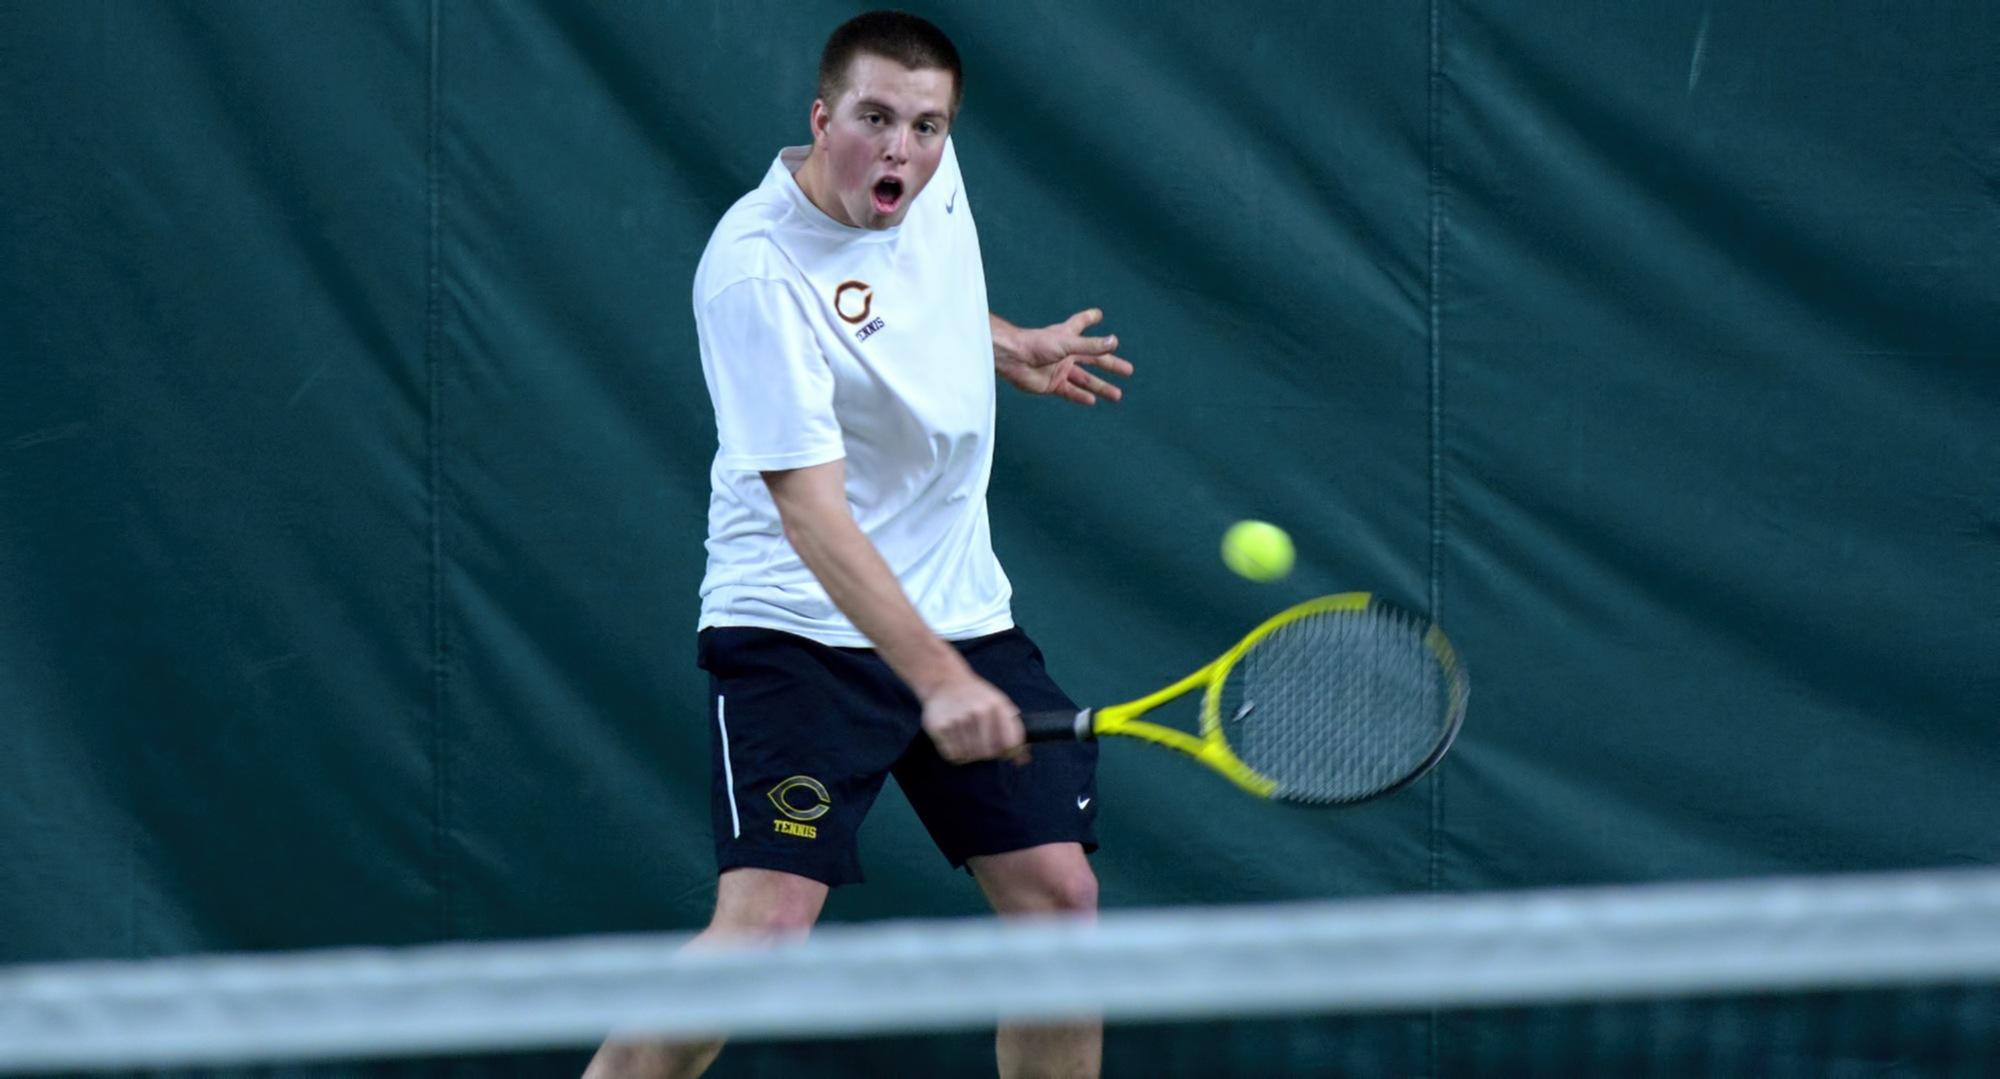 Junior Isaac Toivonen won his eighth straight singles match as he posted a straight set victory over his Division I opponent from UND.